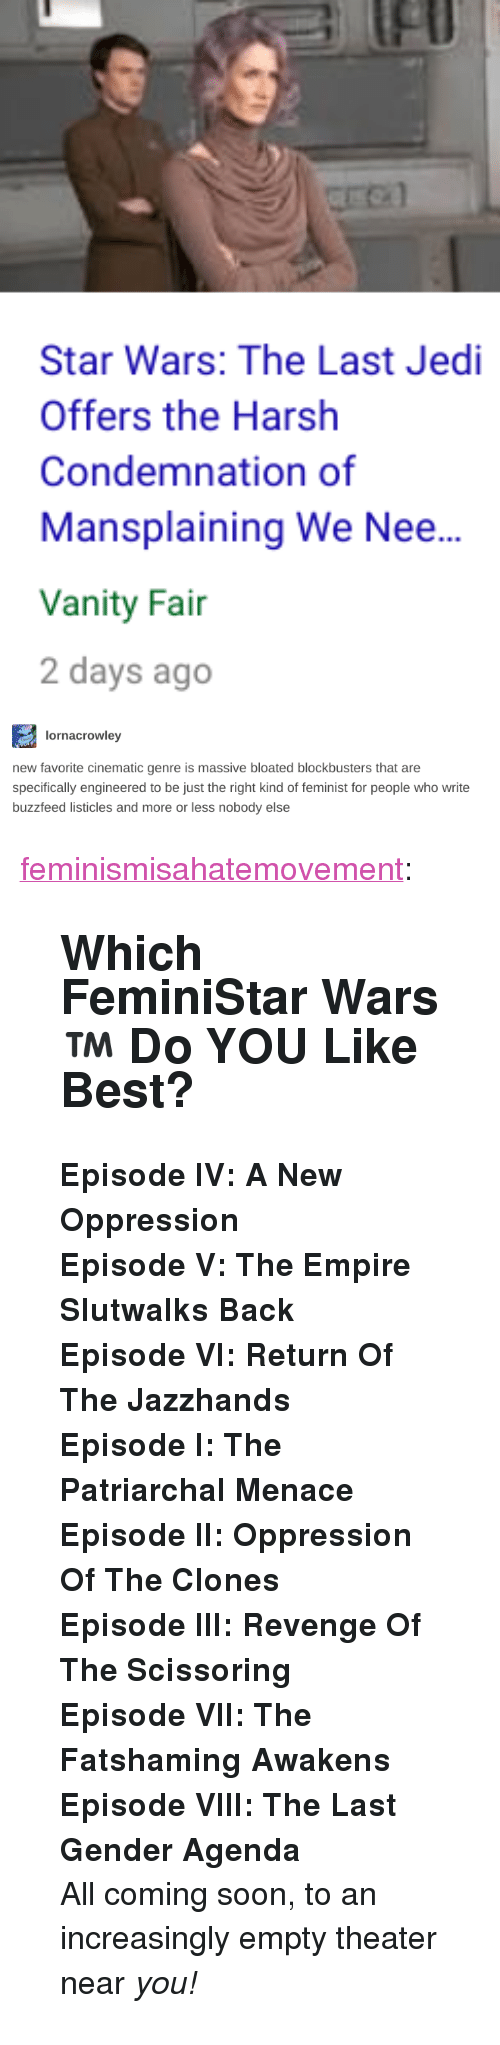 """scissoring: fl  Star Wars: The Last Jedi  Offers the Harsh  Condemnation of  Mansplaining We Nee...  Vanity Fai  2 days ago   lornacrowley  new favorite cinematic genre is massive bloated blockbusters that are  specifically engineered to be just the right kind of feminist for people who write  buzzfeed listicles and more or less nobody else <p><a href=""""http://feminismisahatemovement.tumblr.com/post/168692515648/which-feministar-wars-do-you-like-best"""" class=""""tumblr_blog"""">feminismisahatemovement</a>:</p>  <blockquote><h2><b>Which FeminiStar Wars™   Do YOU Like Best?<br/></b></h2><p><b>Episode IV: A New Oppression</b></p><p><b>Episode V: The Empire Slutwalks Back</b></p><p><b>Episode VI: Return Of The Jazzhands</b></p><p><b>Episode I: The Patriarchal Menace</b></p><p><b>Episode II: Oppression Of The Clones<br/></b></p><p><b>Episode III: Revenge Of The Scissoring</b></p><p><b>Episode VII: The Fatshaming Awakens</b></p><p><b>Episode VIII: The Last Gender Agenda<br/></b></p><p>All coming soon, to an increasingly empty theater near <i>you!</i><br/></p></blockquote>"""